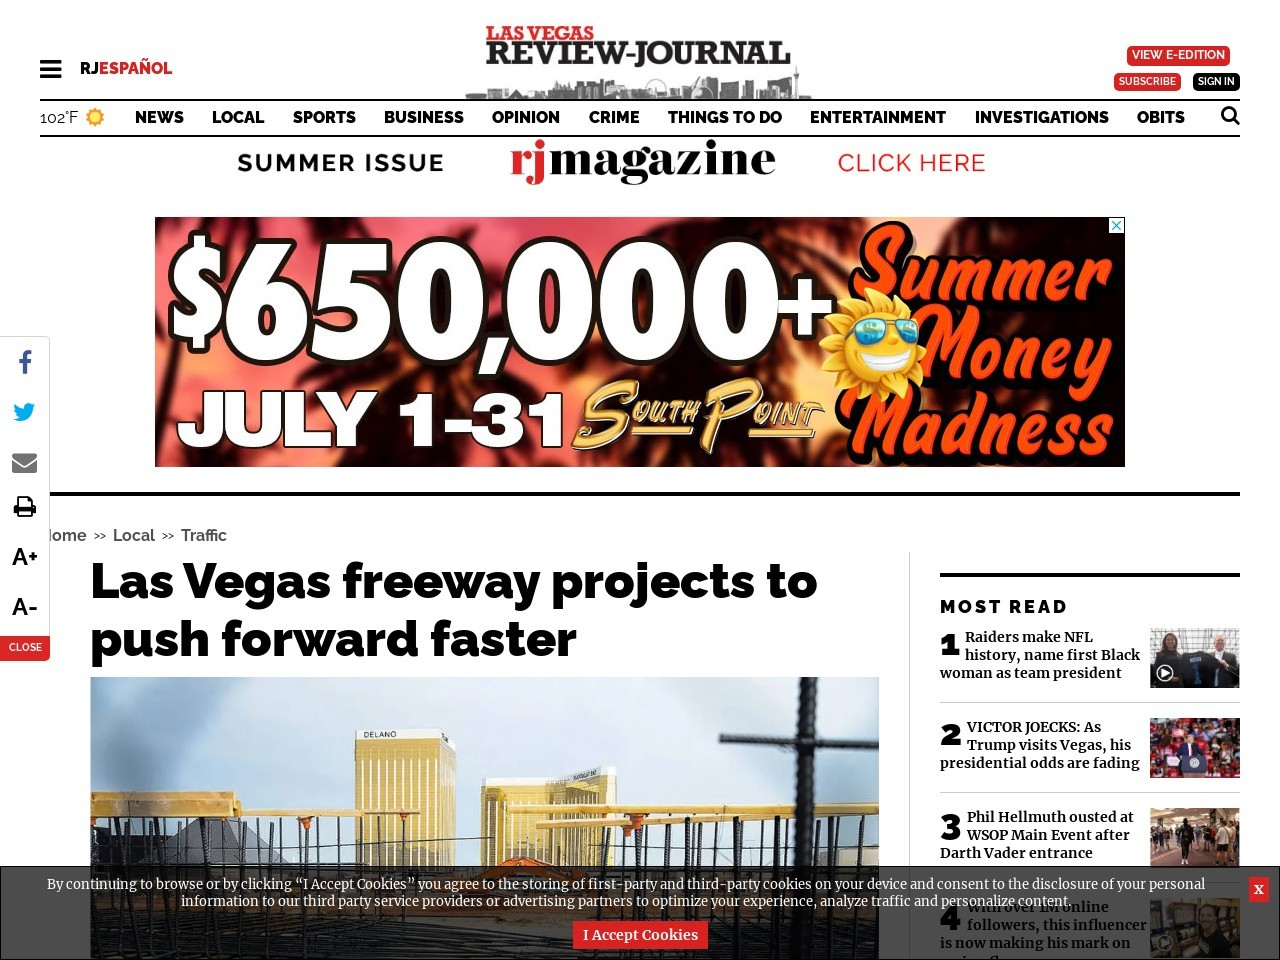 Las Vegas freeway projects to push forward faster